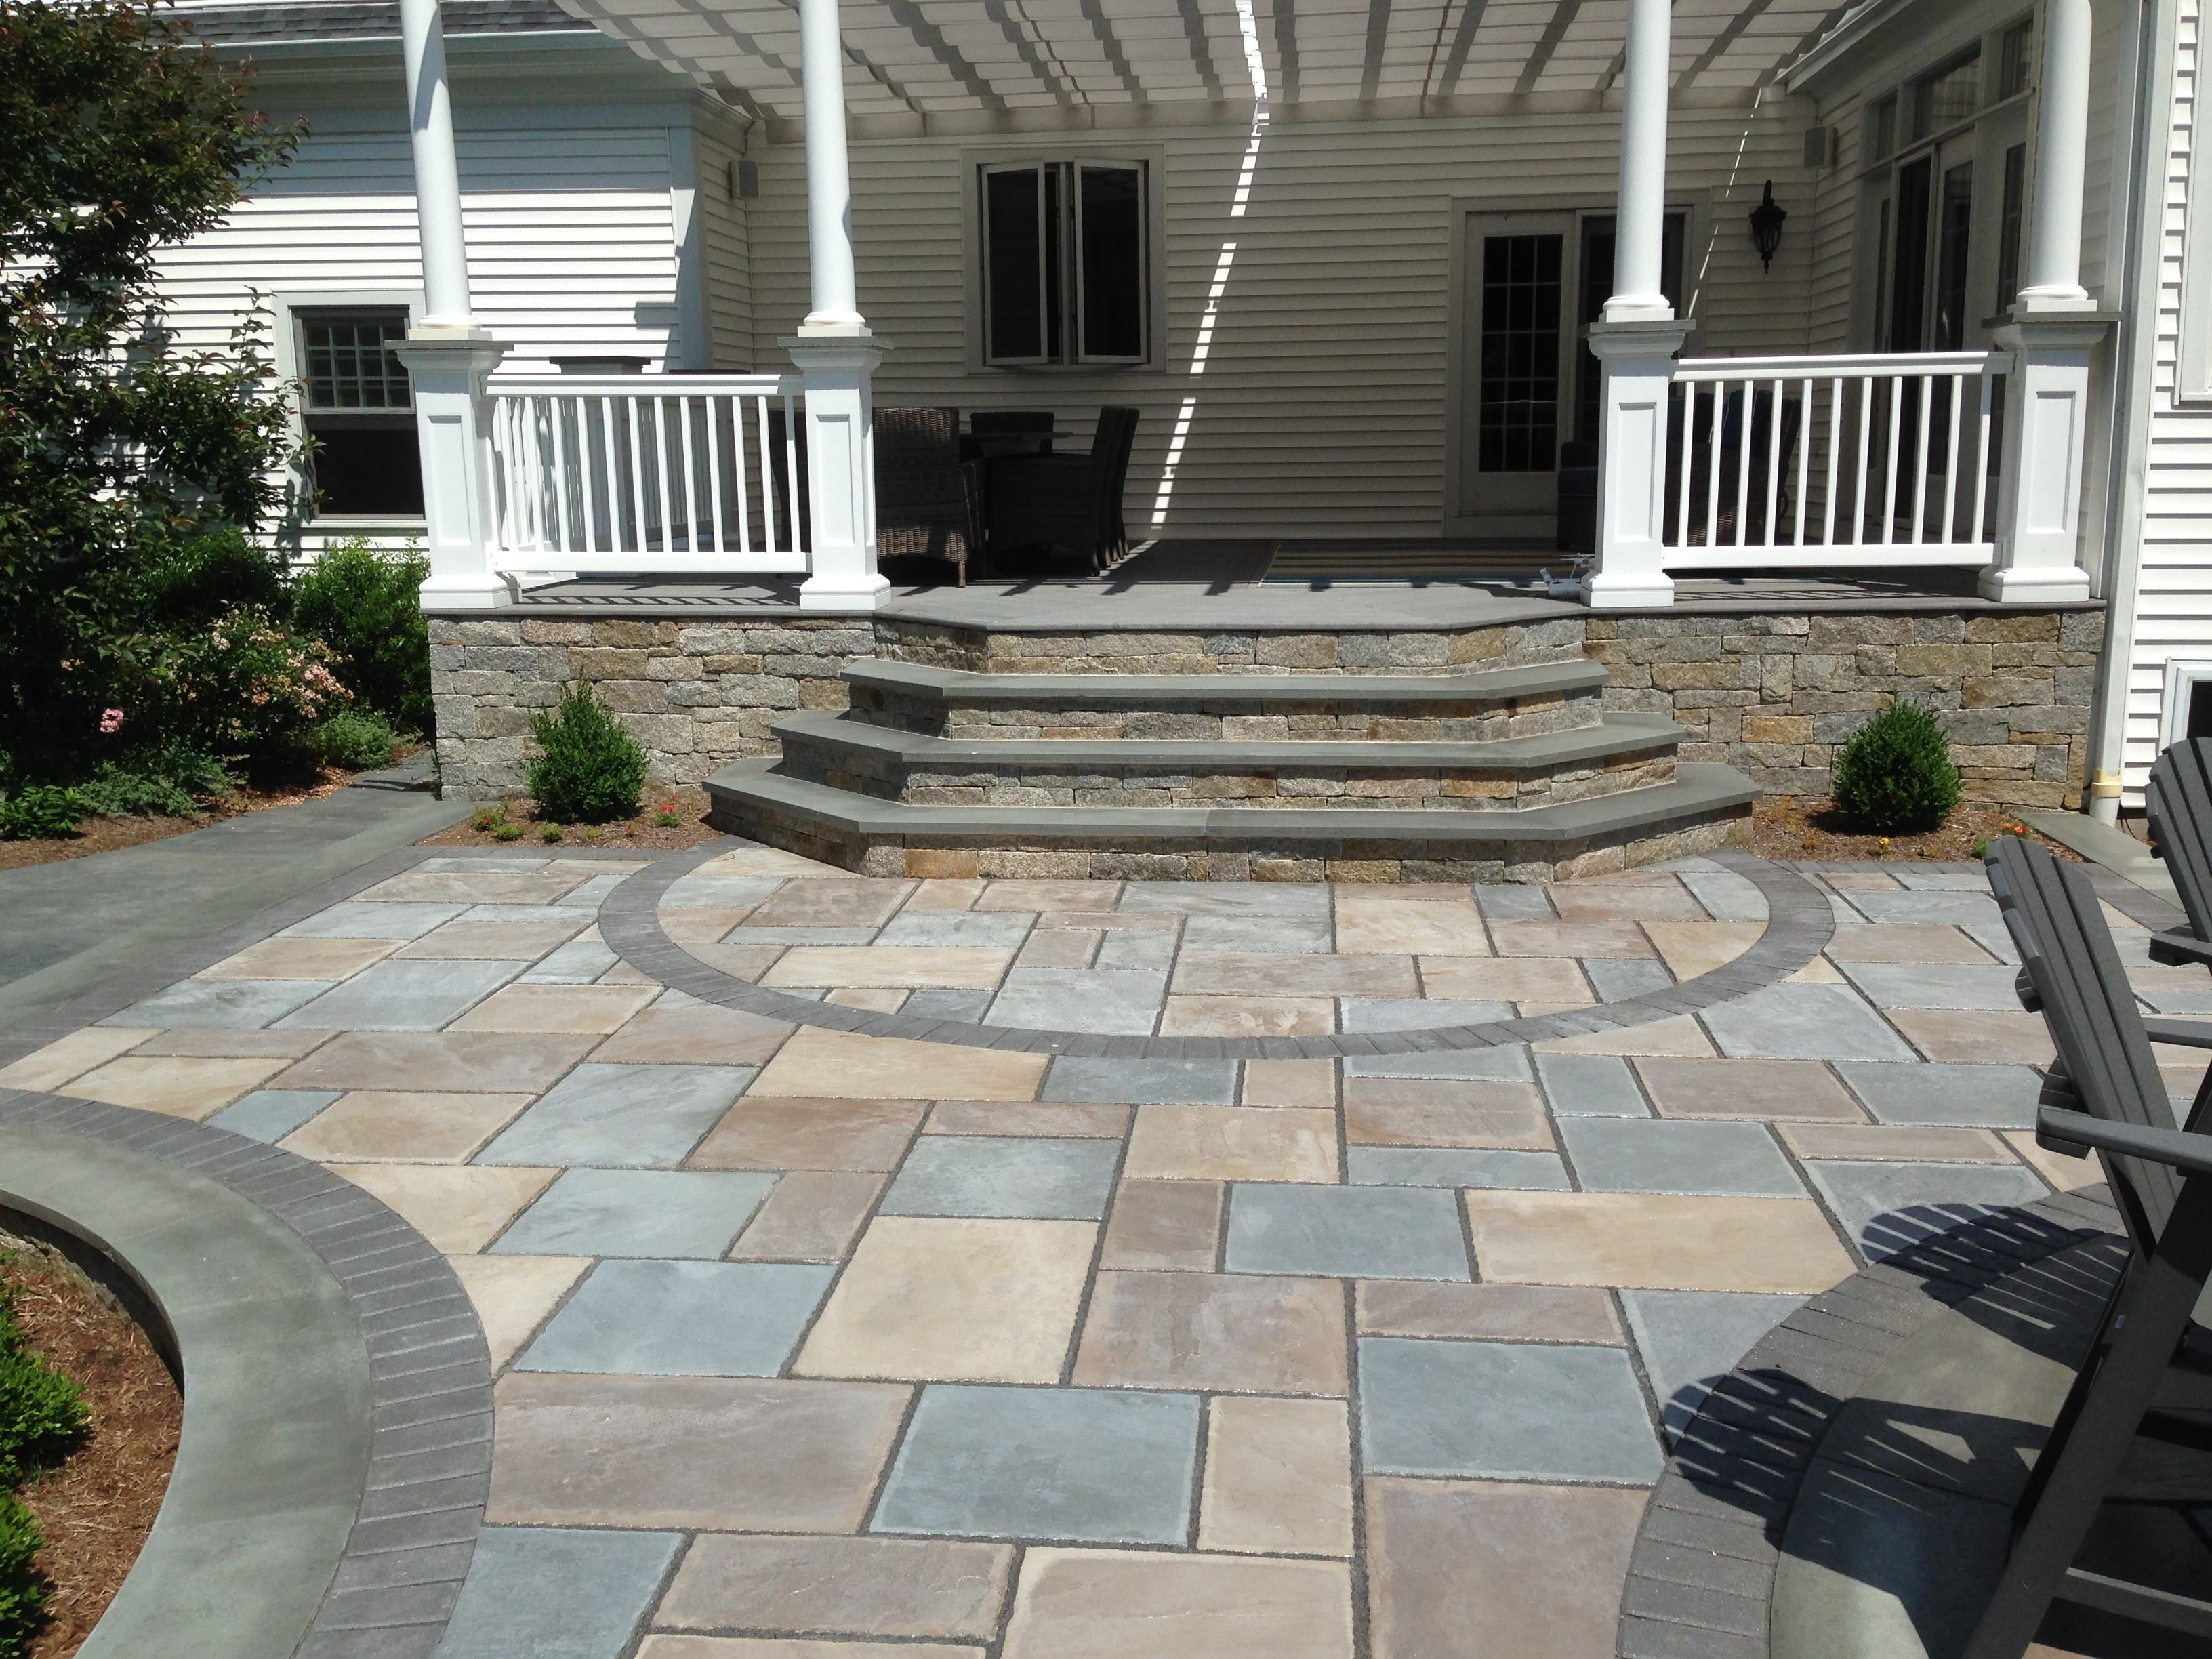 Patios|Bluestone|Pavers|Photo Gallery|Torrison Stone ... on Rock Patio Designs  id=13418